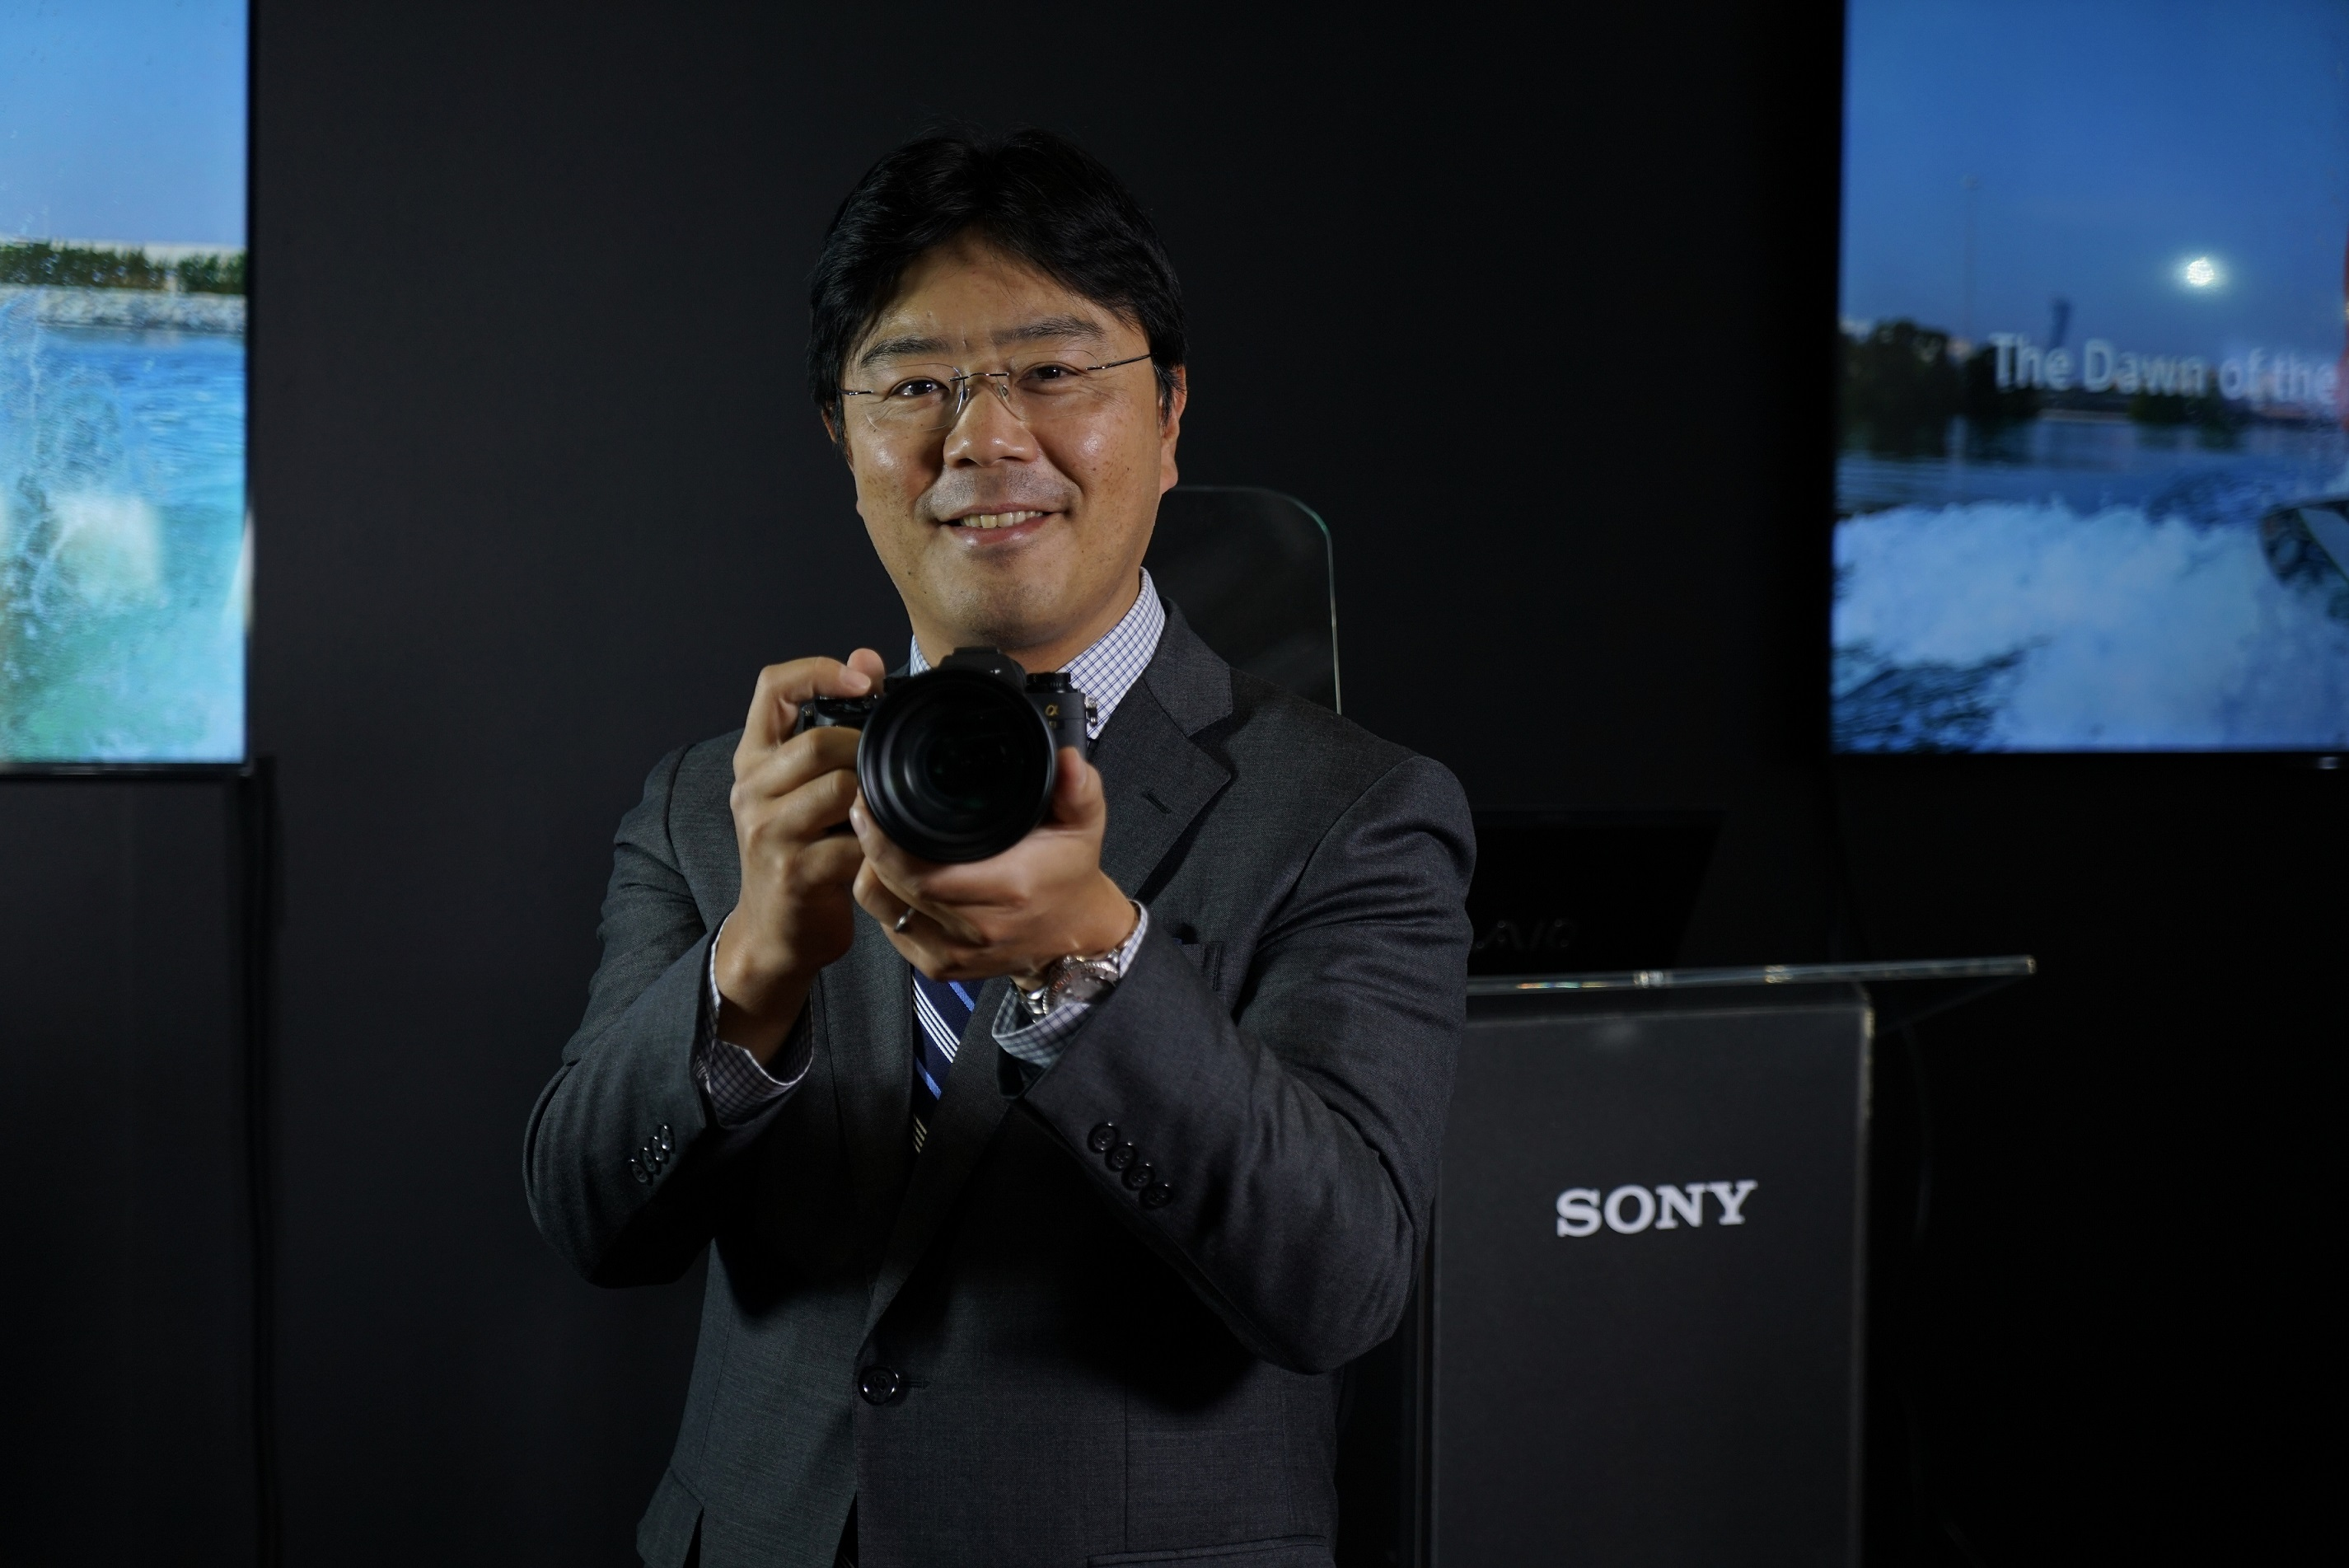 Taro Kimura, Managing Director, Sony Middle East & Africa, during the UAE launch of Sony A9 digital camera